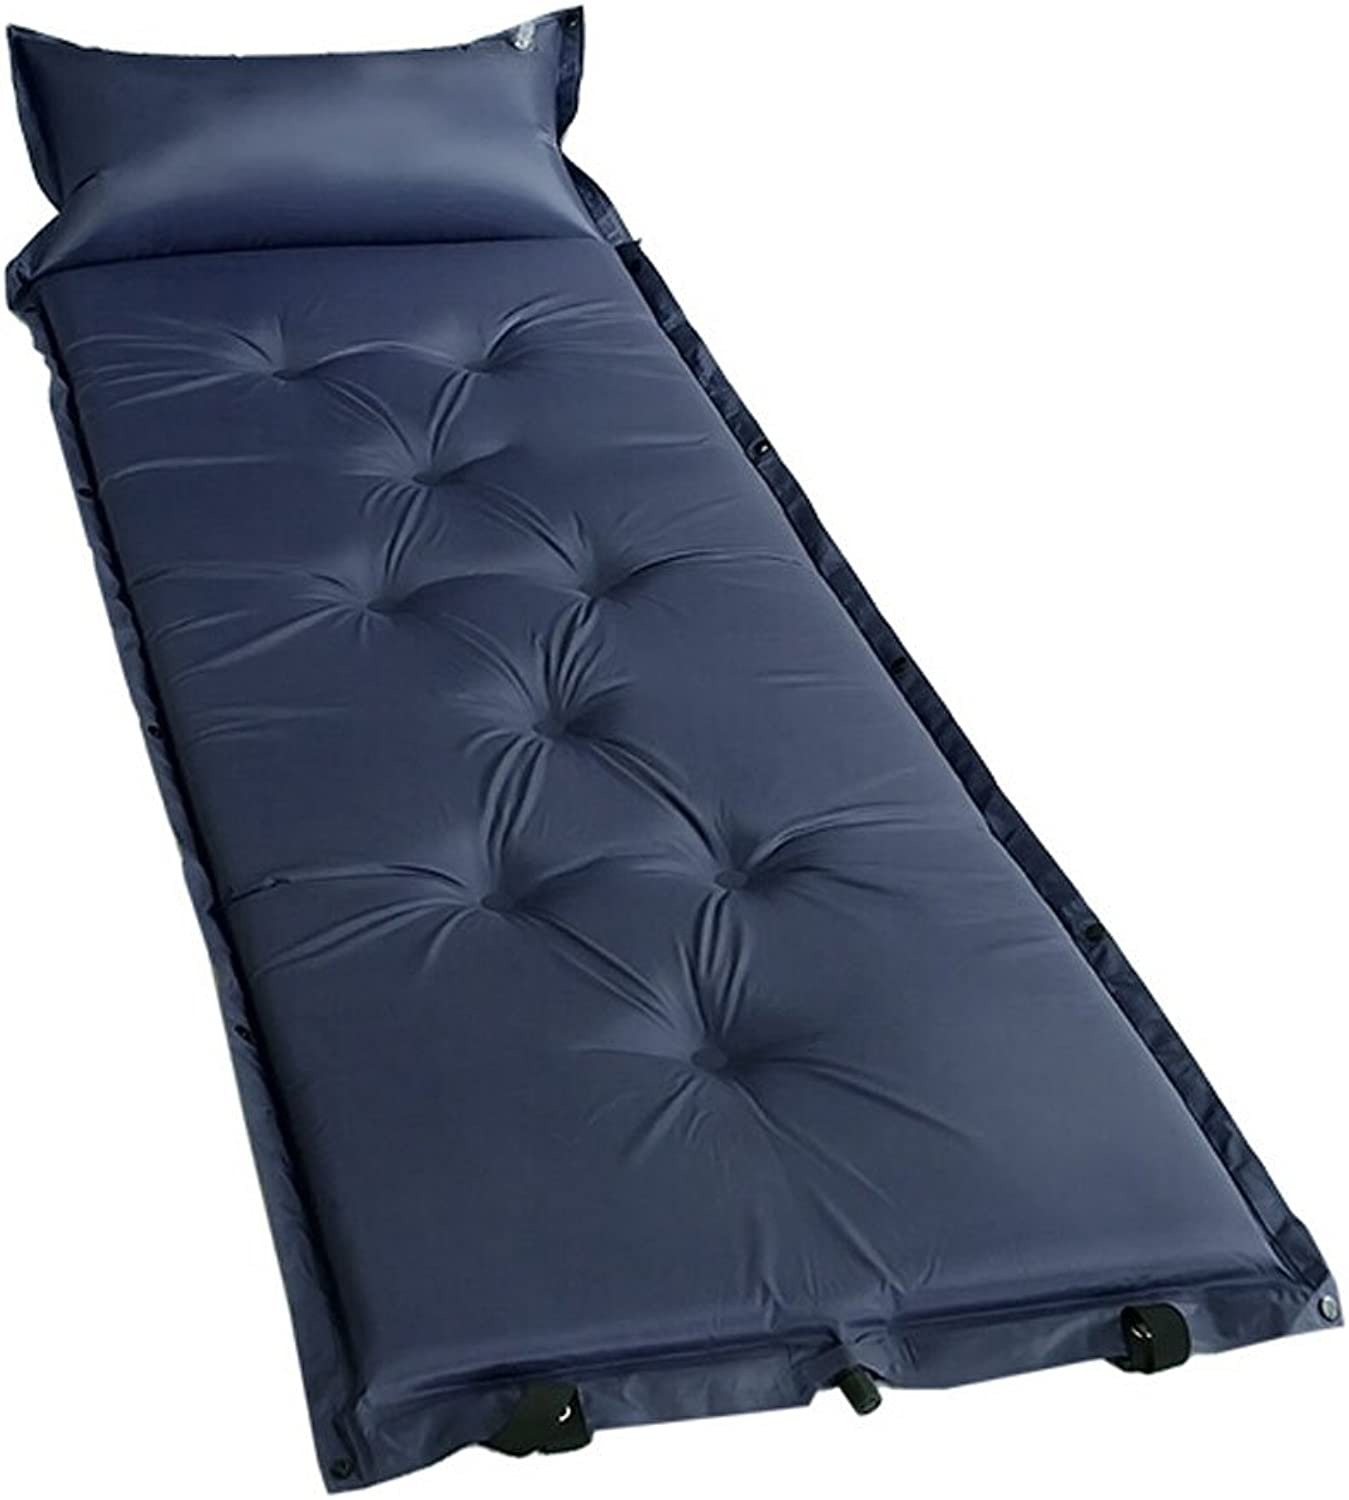 Portable Camping Sleeping Air Pad Mattress With Inflatable Pillow DARK blueE A